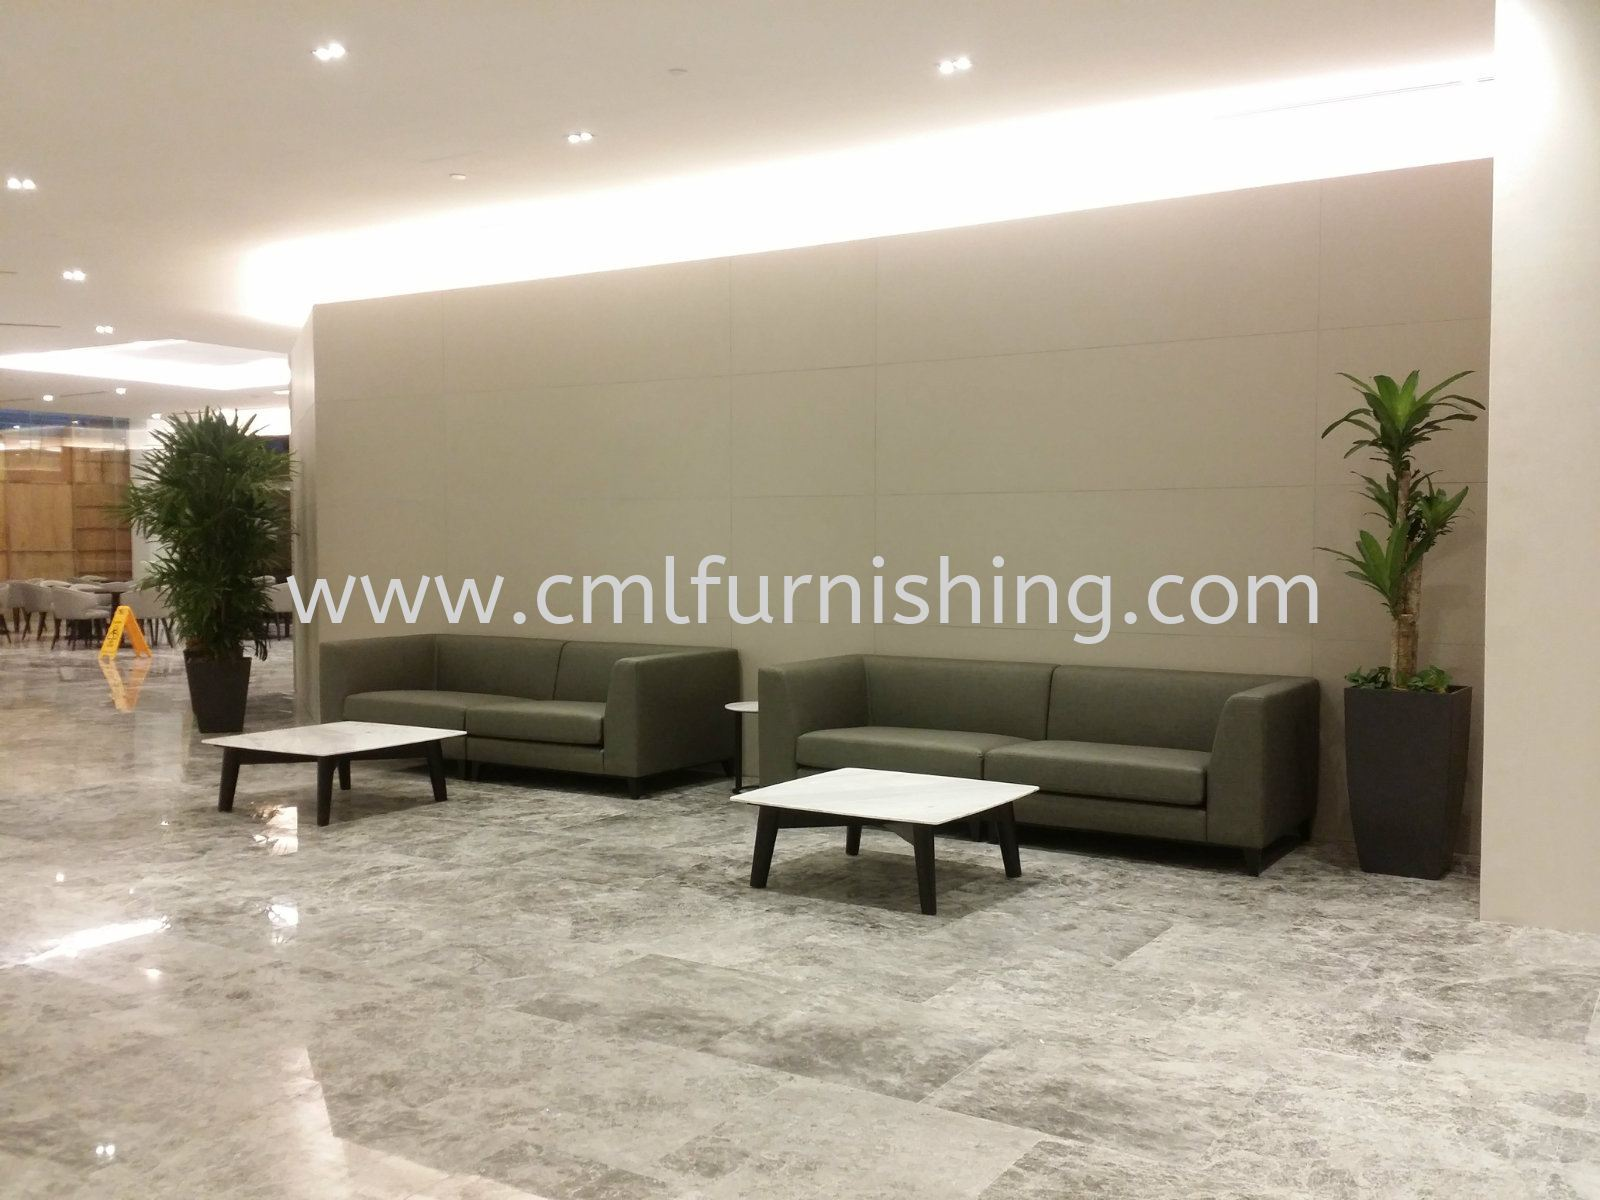 Commercial - Custom Loose Furniture